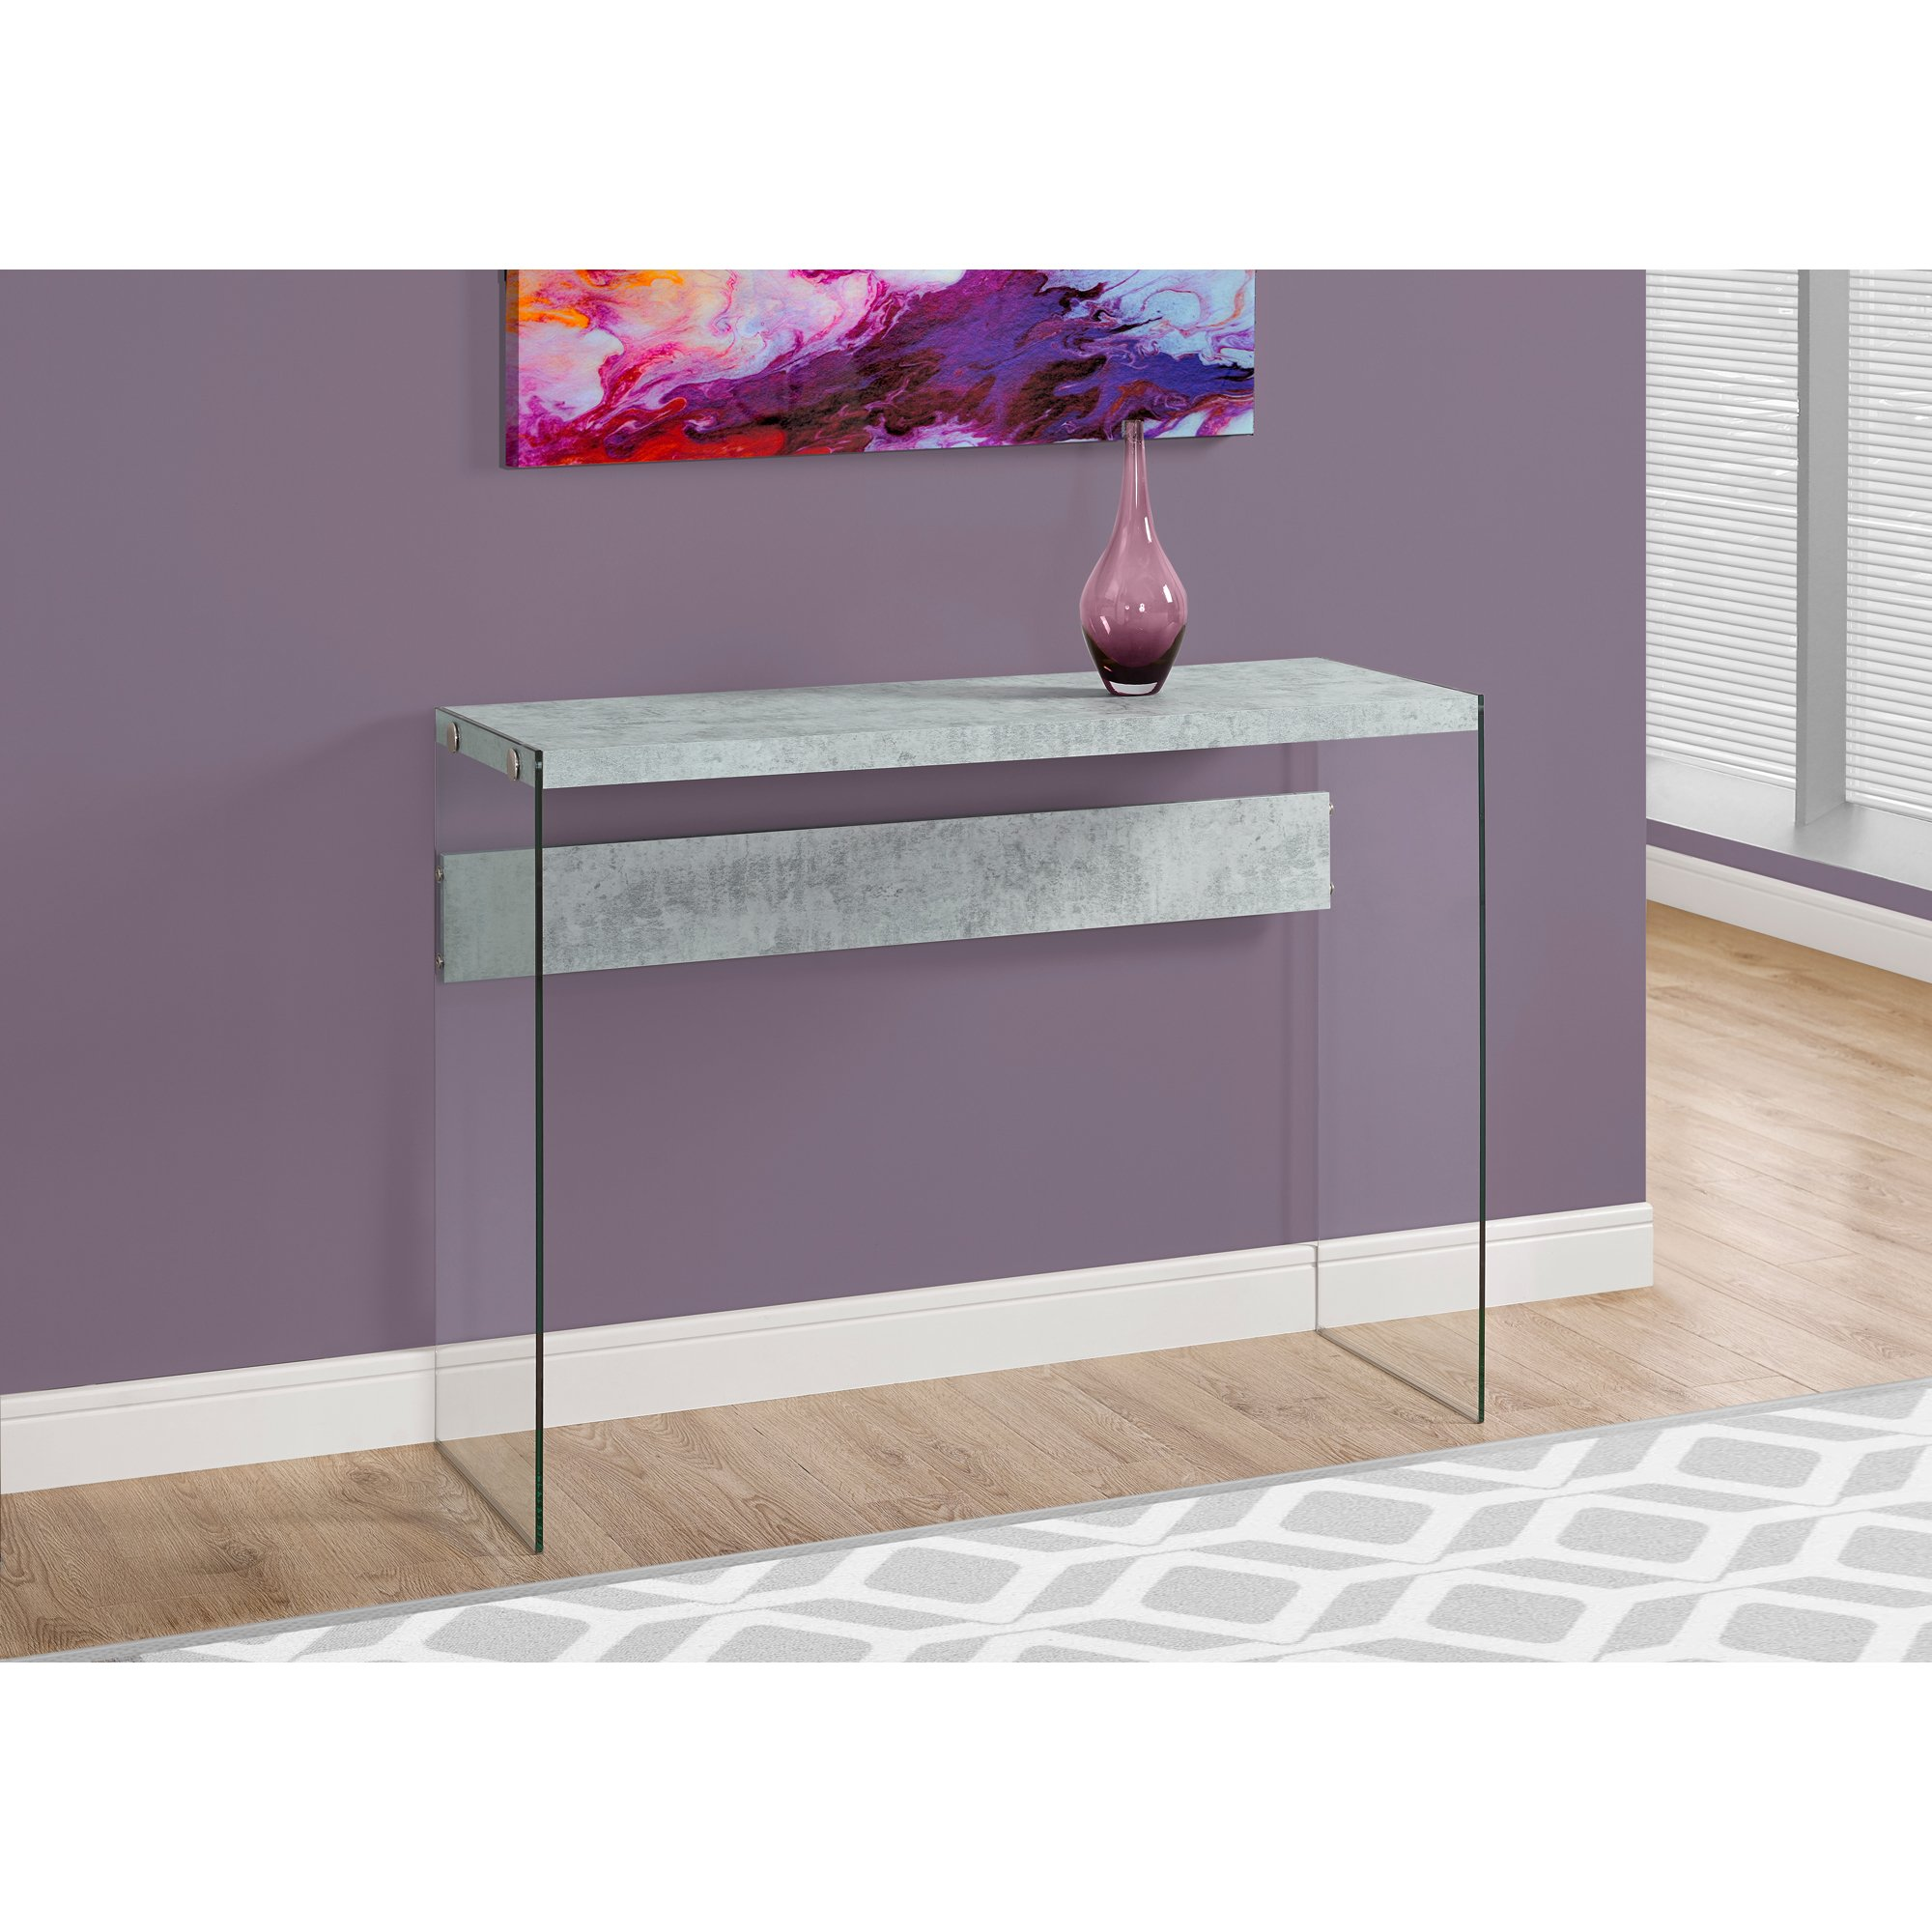 grey glass entryway console accent table free shipping today ashley coffee and end tables pottery barn style dining legs crystal shade lamp small kitchen bench set modern round